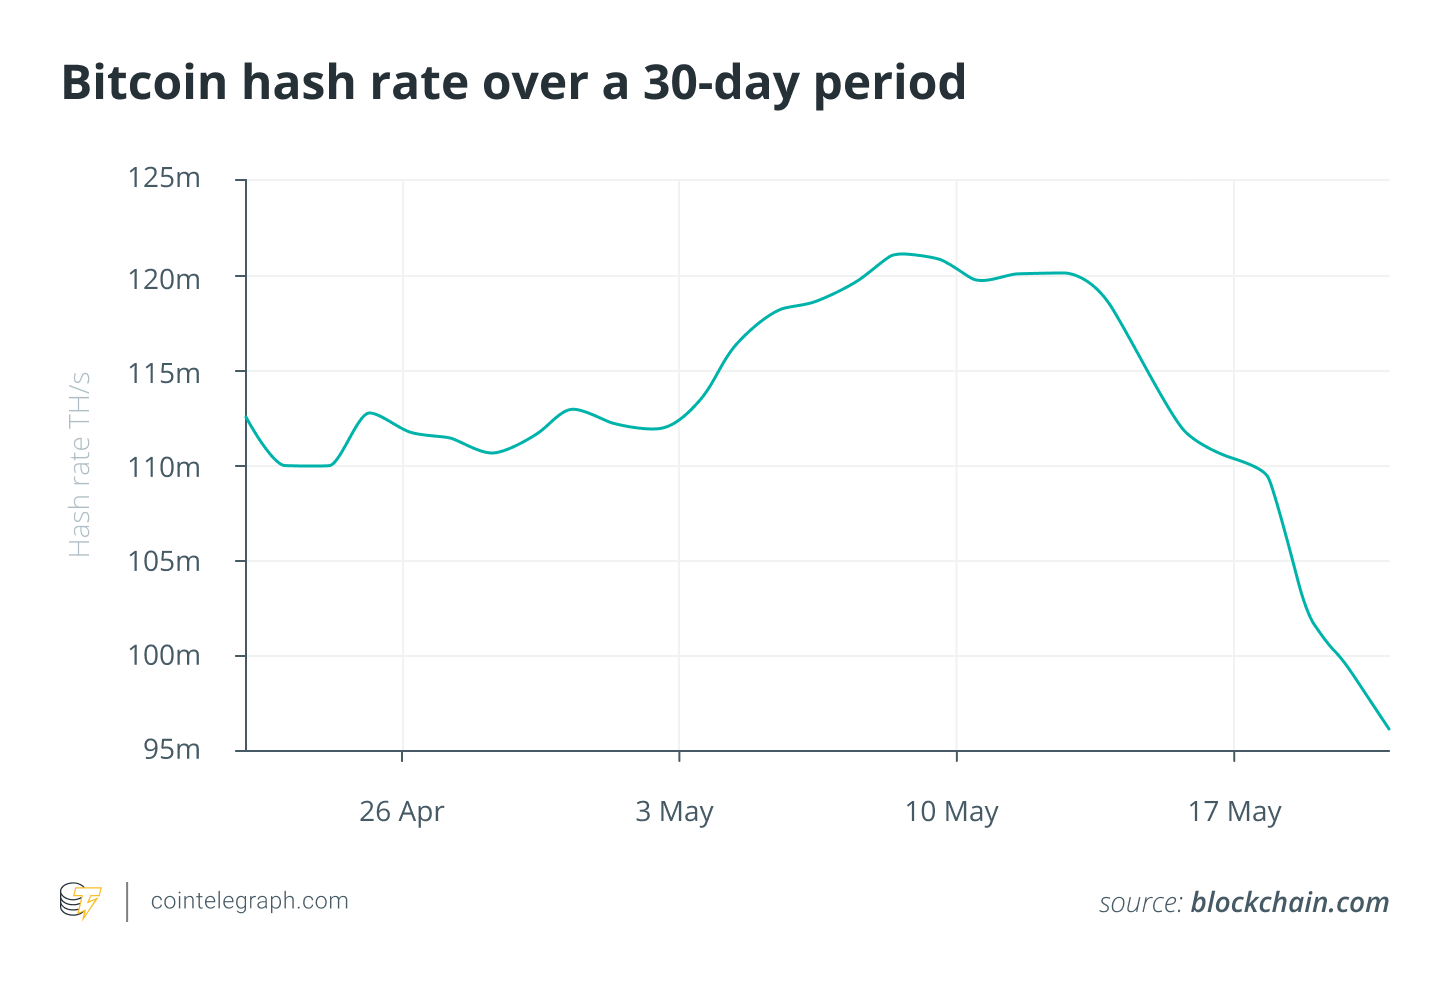 Total hash rate